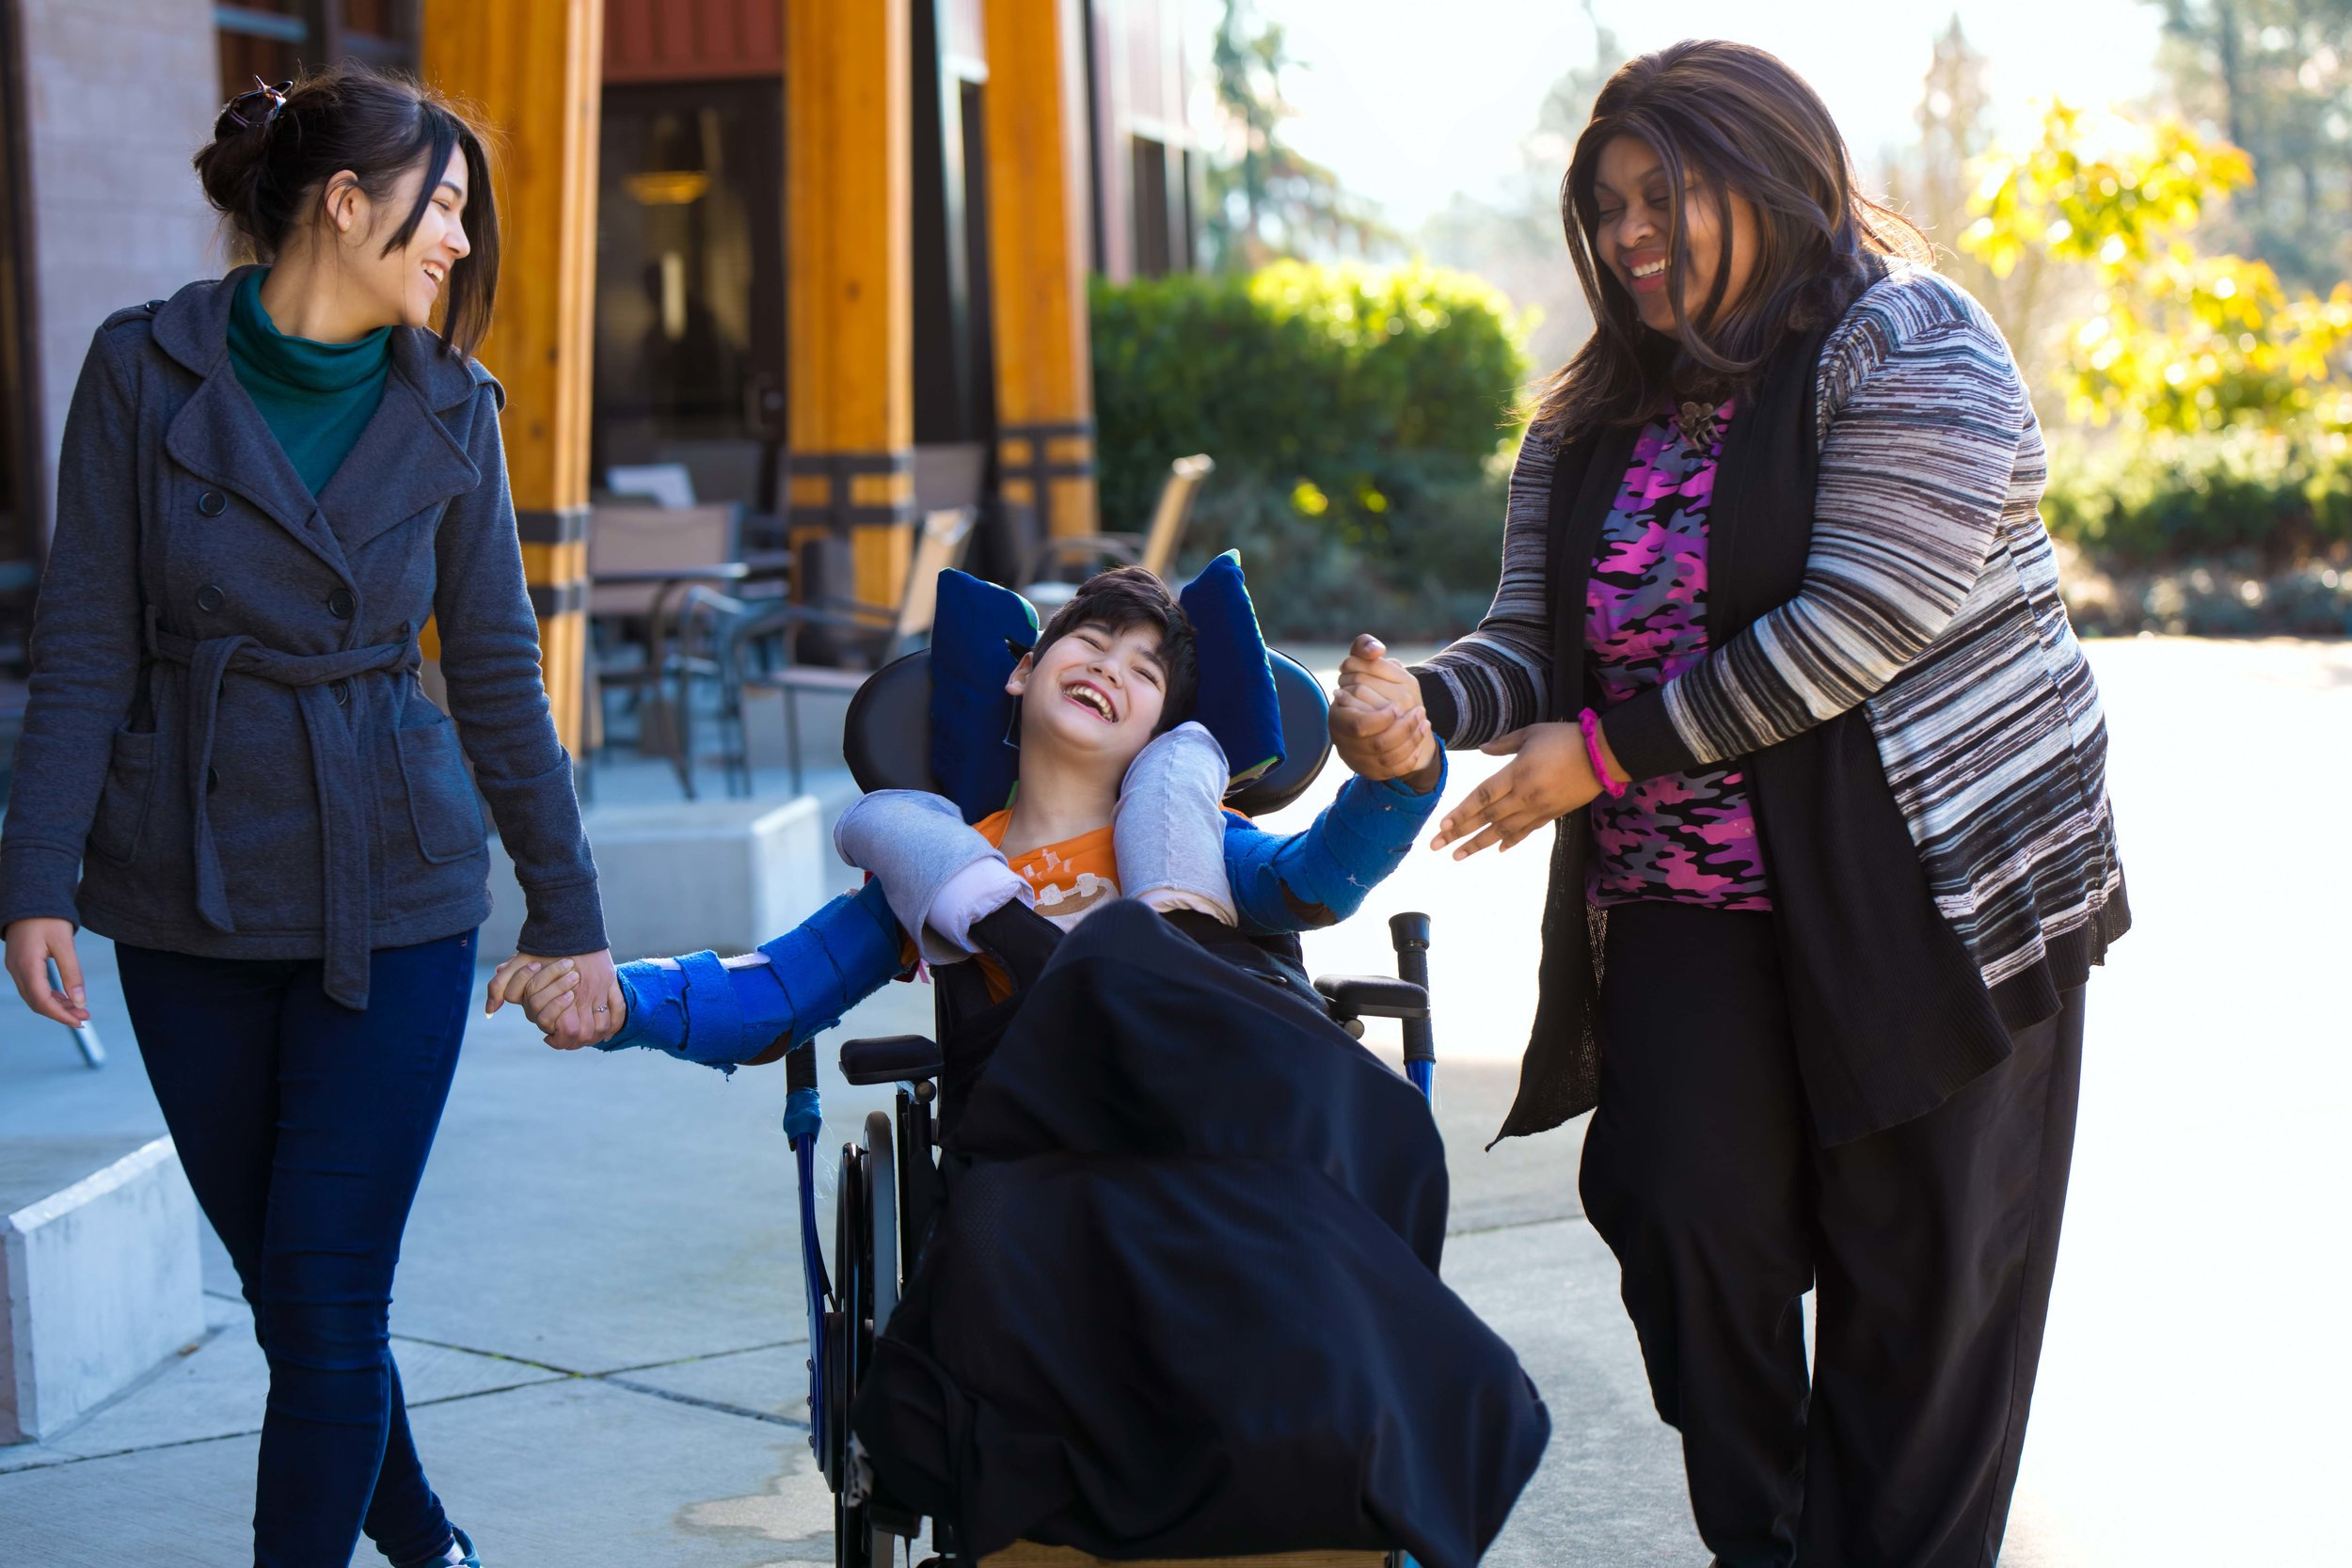 Image of a sunlit streetscape where two women are holding hands with a child in a wheelchair. All three are smiling.